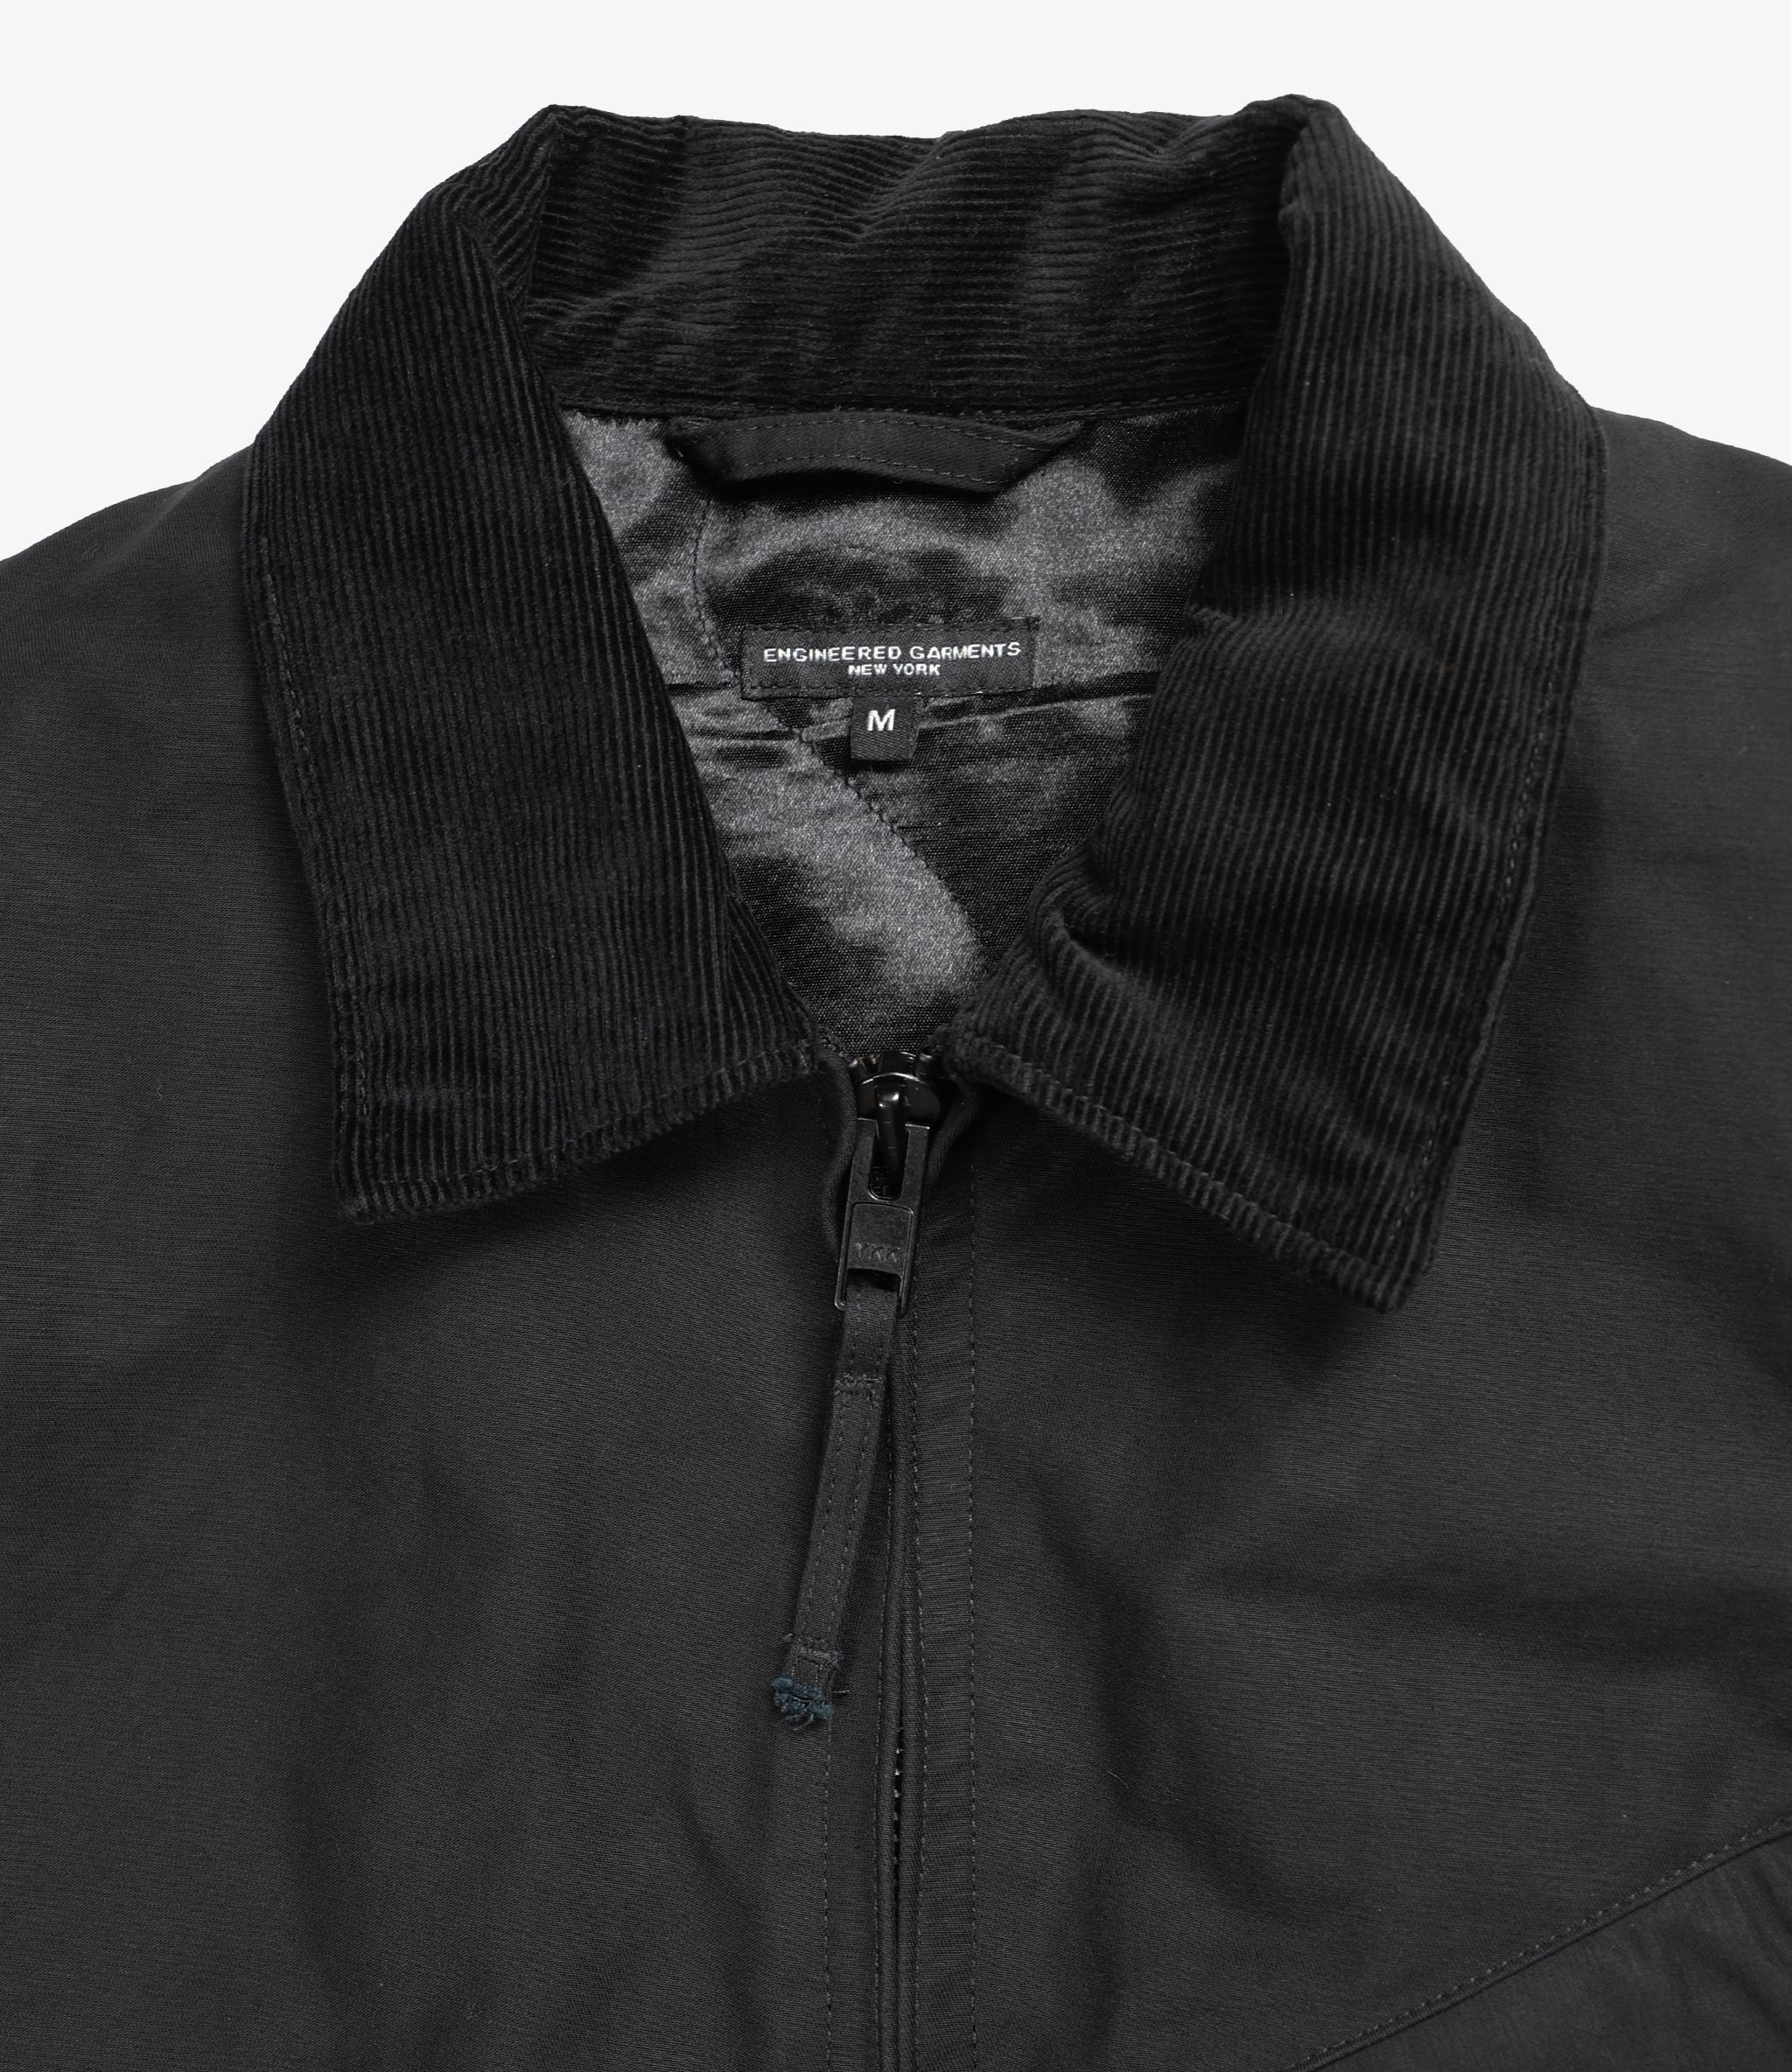 Engineered Garments  Driver Jacket - Black Cotton Double Cloth